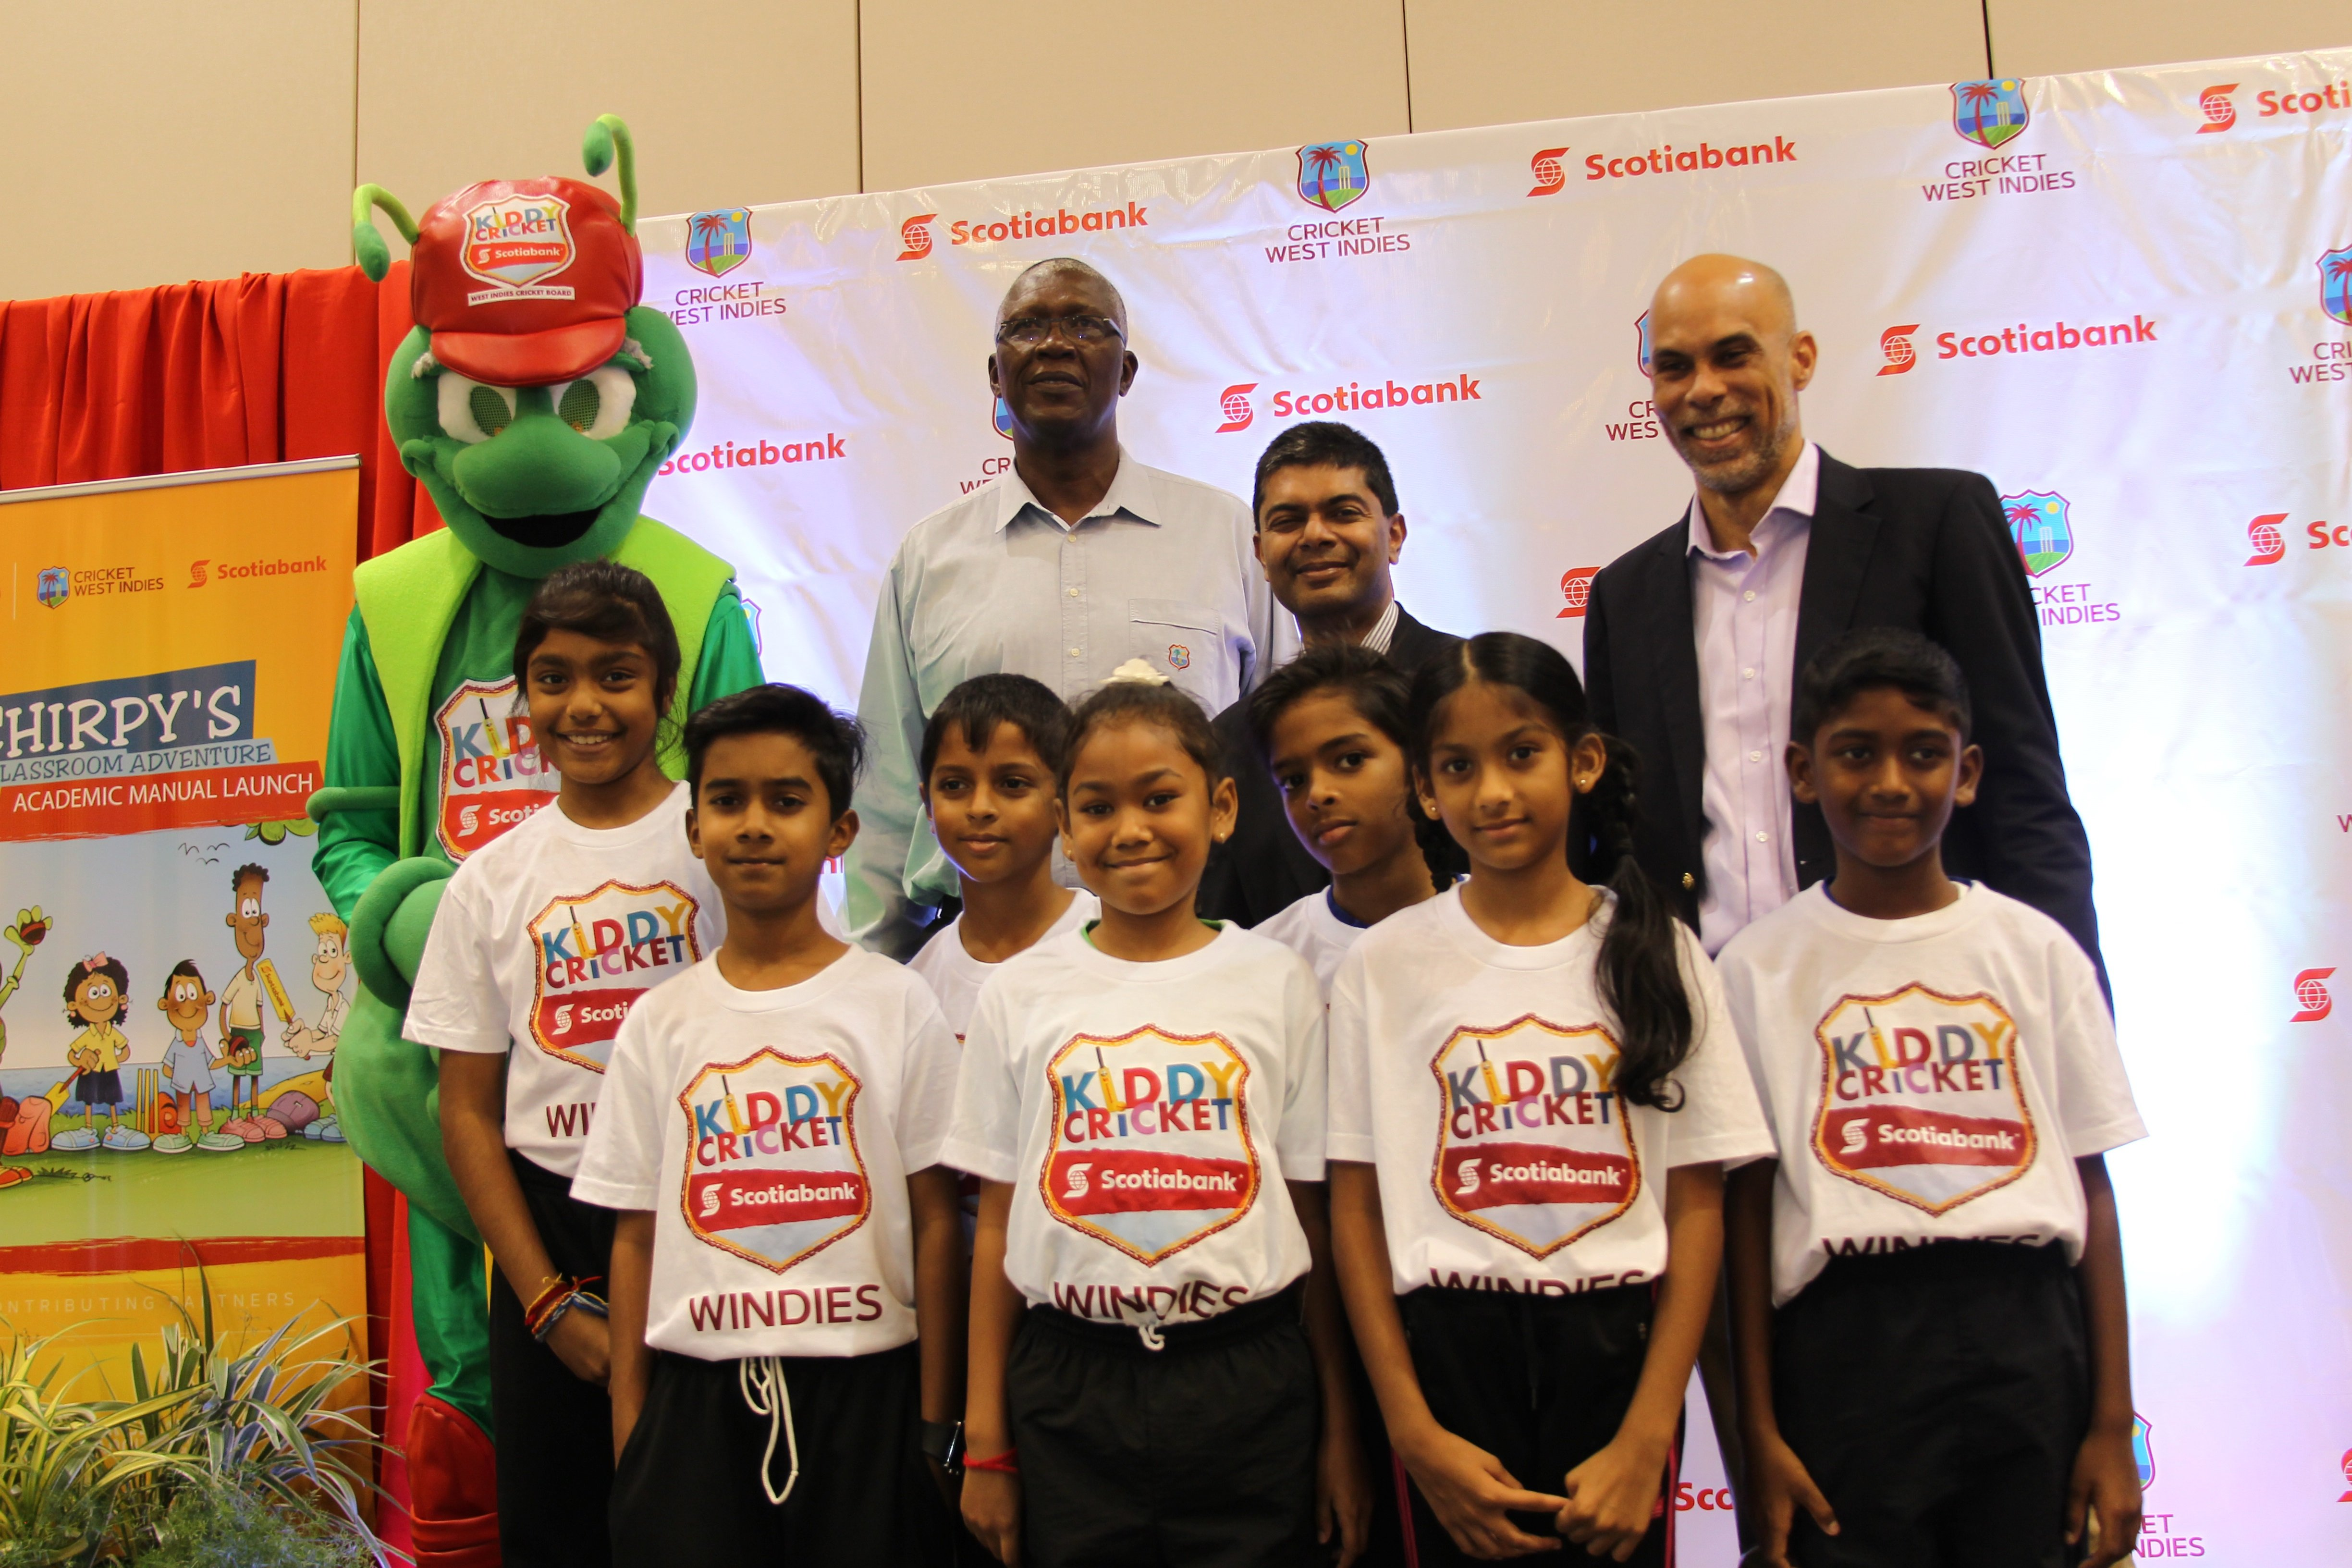 (Back row left to right) Kiddy Cricket mascot Chirpy; former West Indies player Joel Garner, CWI ambassador; Reshard Mohammed, Scotiabank VP; and director of cricket at CWI, former West Indies player Jimmy Adams pose with youngsters yesterday at the launch of Scotia's Kiddy Cricket Academic Manual at the Hyatt Regency, PoS. PHOTO BY RATTAN JADOO